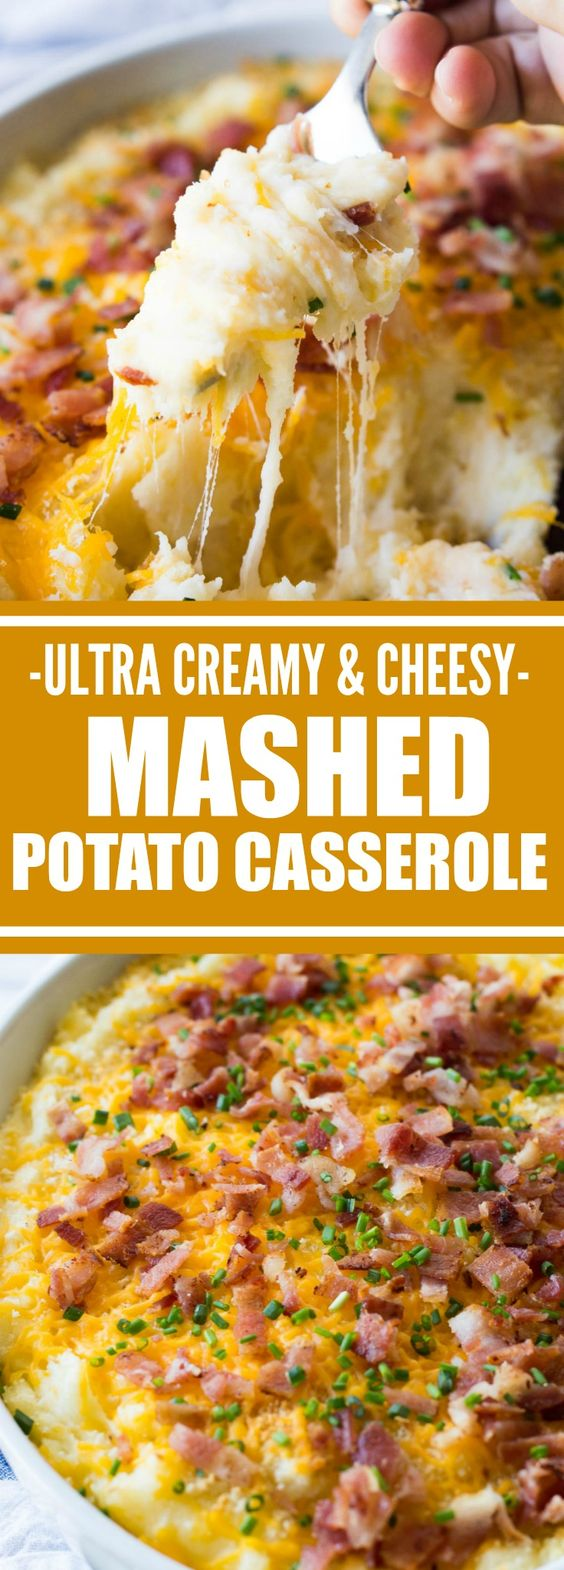 Mashed Potato Casserole.